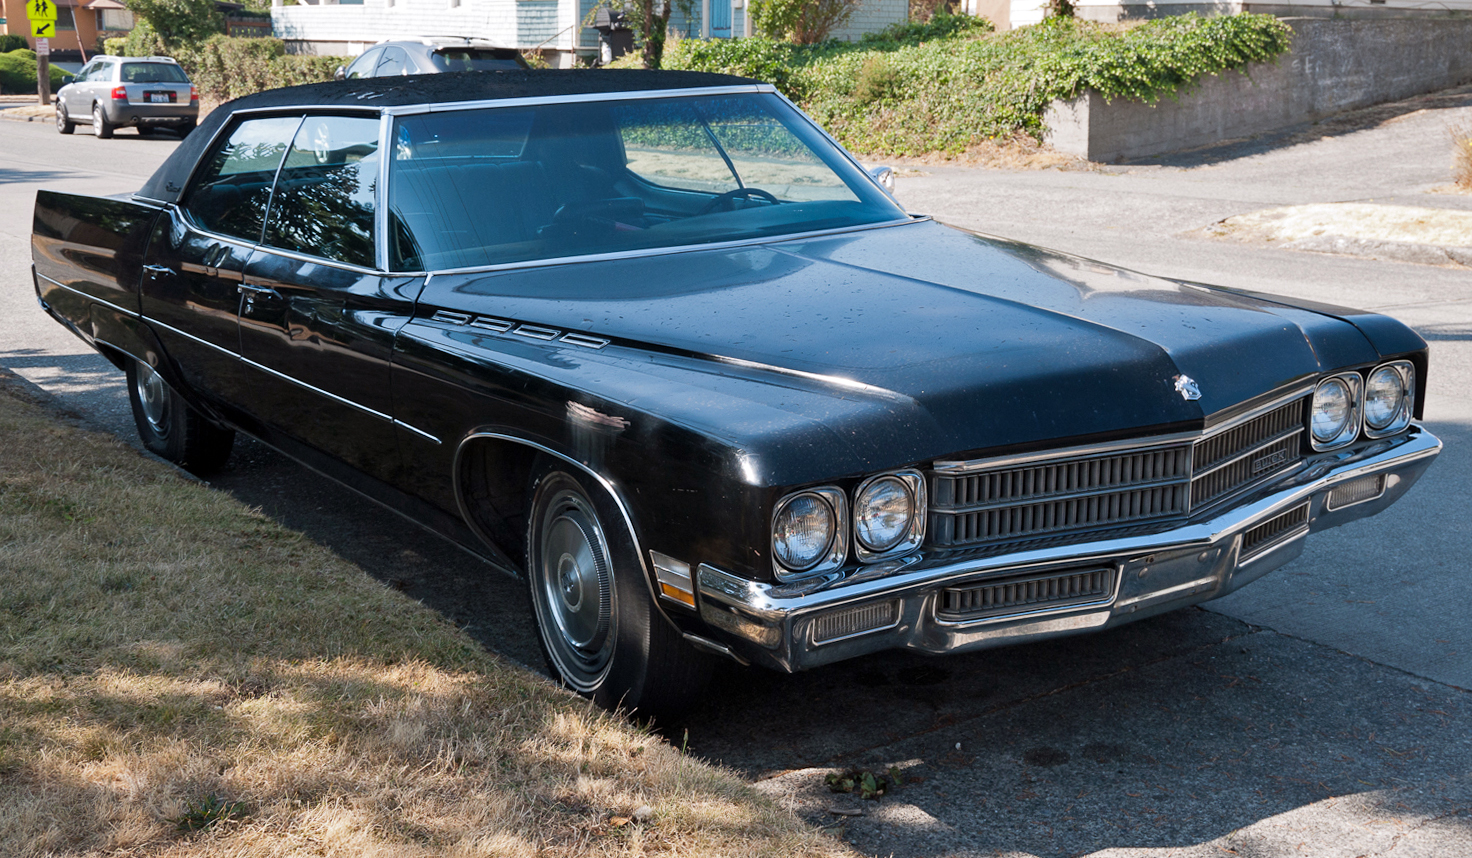 File:1971 Buick Electra 225, Seattle (front).jpg ...